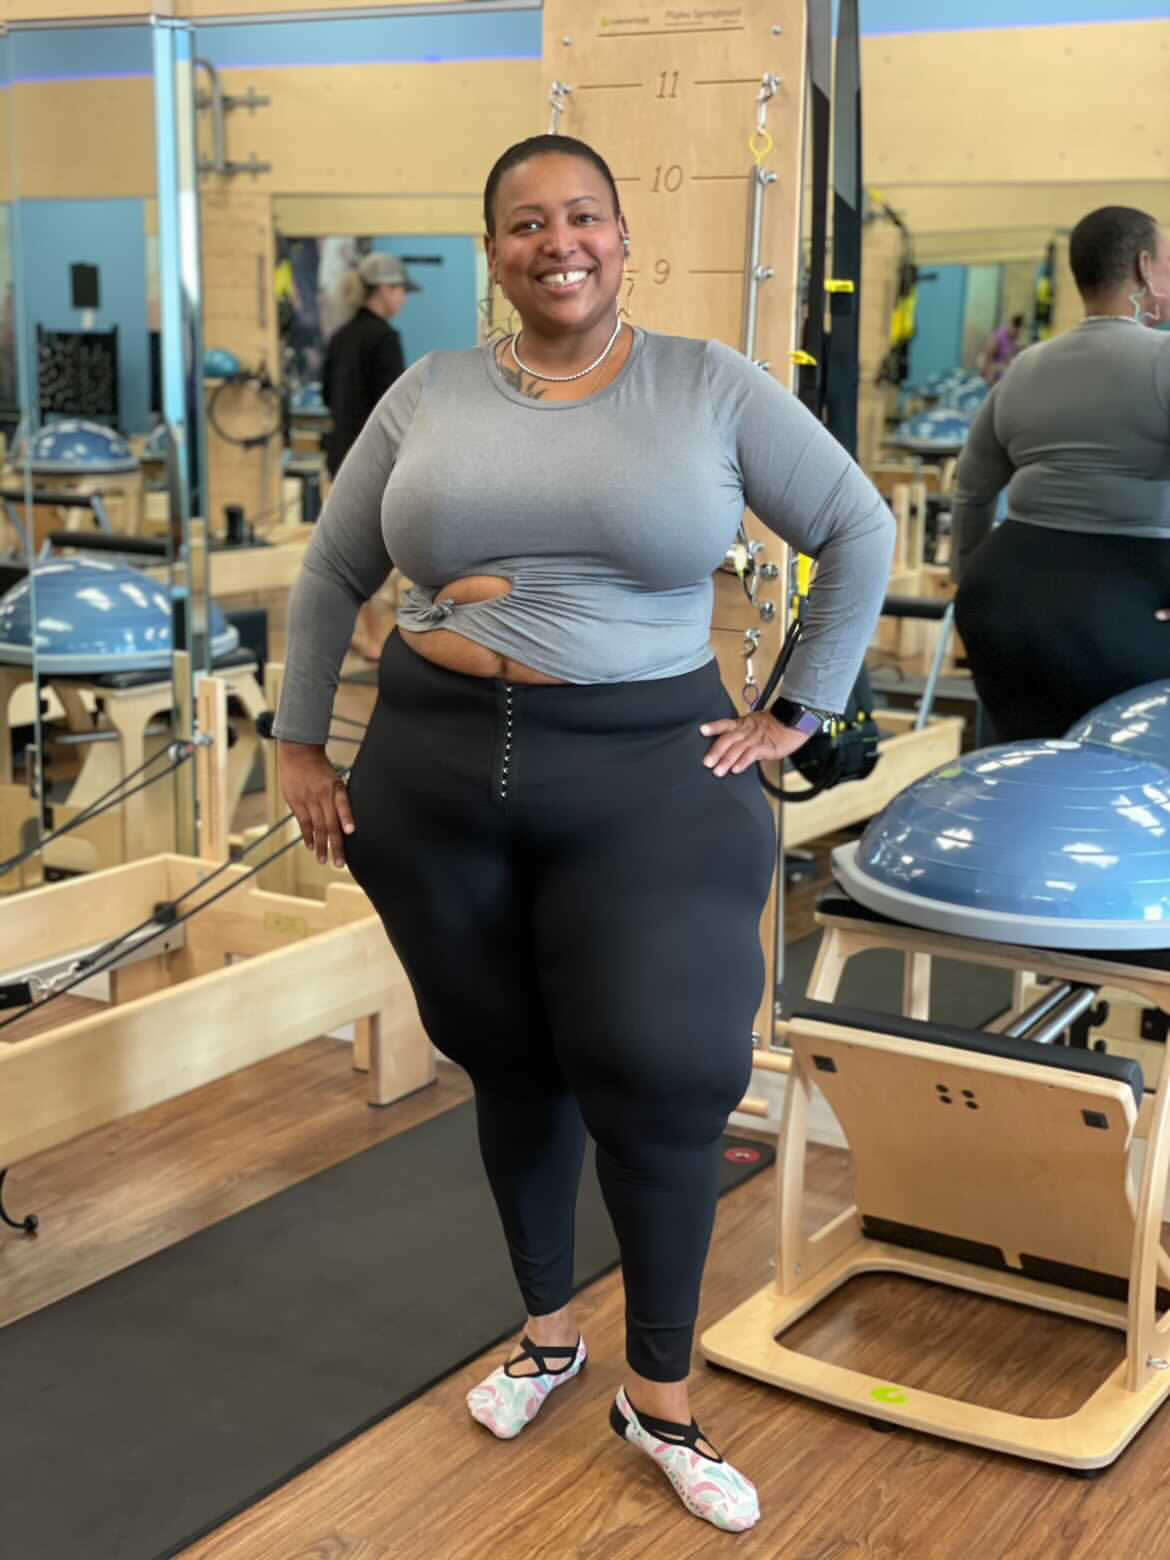 I've Lost Weight and Found Inclusivity In Club Pilates